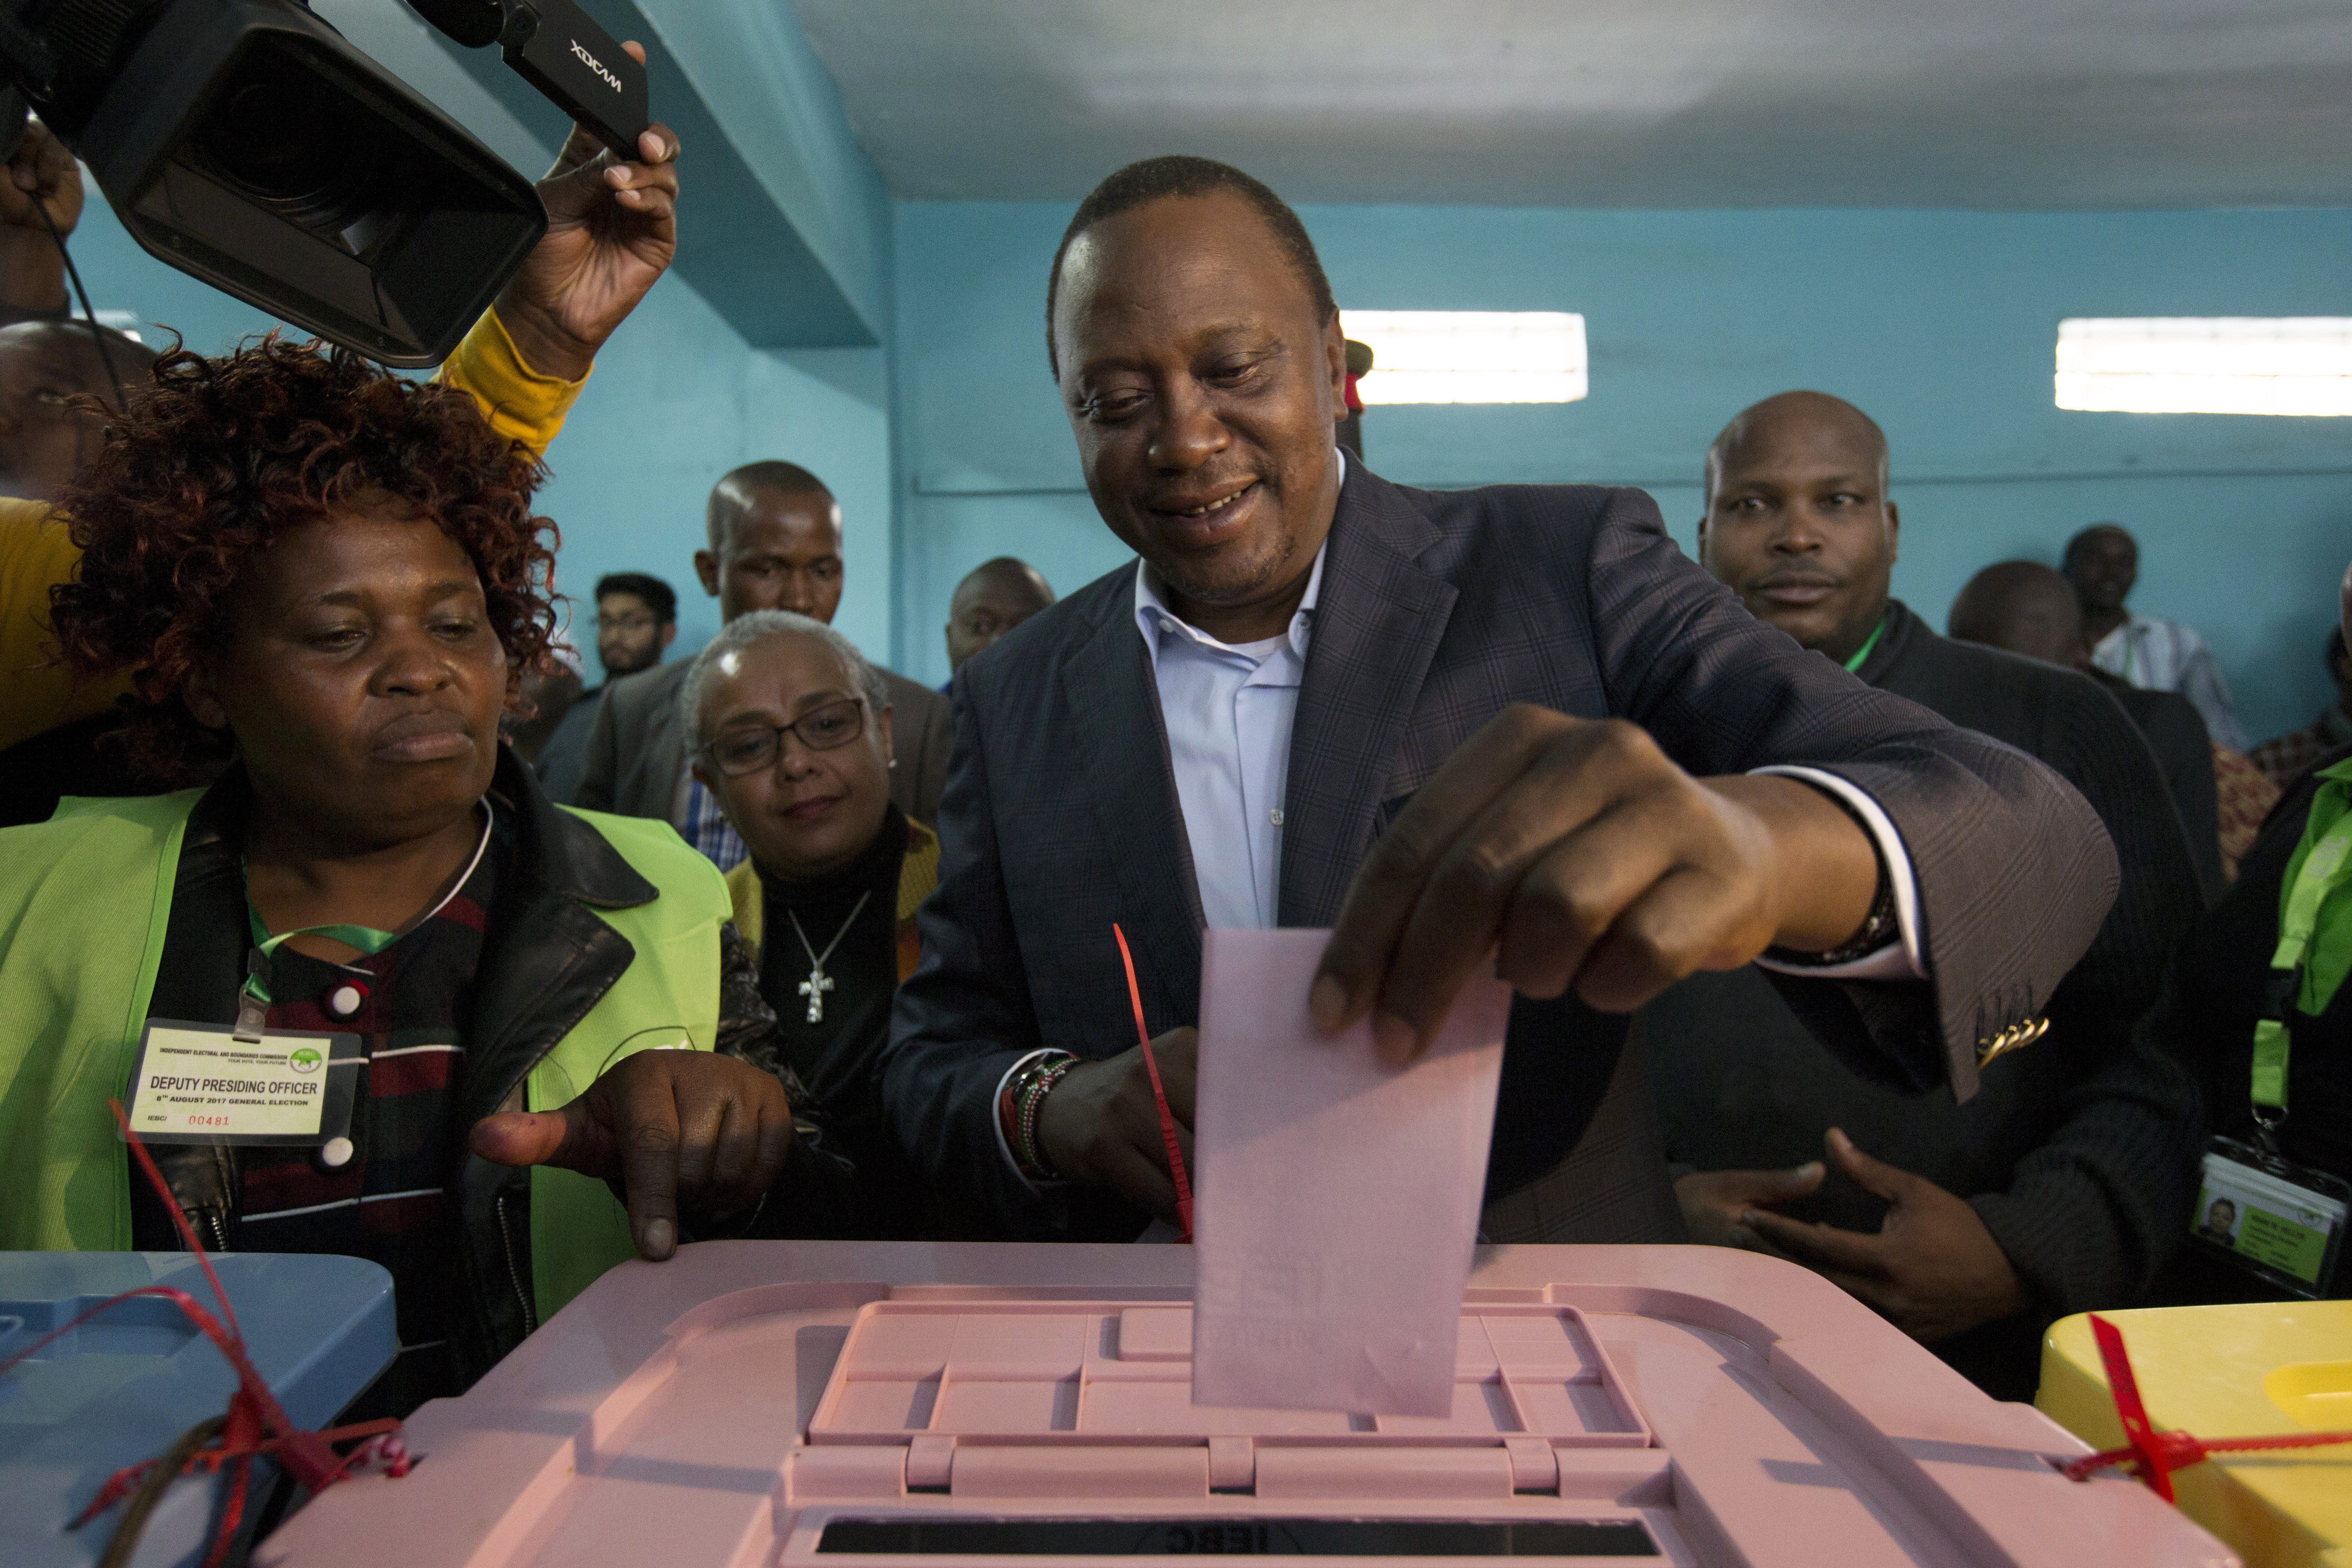 epa06131543 Kenya?s incumbent President and the leader of the ruling Jubilee coalition, Uhuru Kenyatta (C), casts his ballot at a polling station in his traditional home, Gatundu, some 60km north of the capital Nairobi, Kenya, 08 August 2017. Kenyans are casting their votes to elect their leaders in general elections where Kenyatta is being challenged by the popular opposition leader Raila Odinga who leads The National Super Alliance (NASA) coalition. Many fear the possibility of post-election violence.